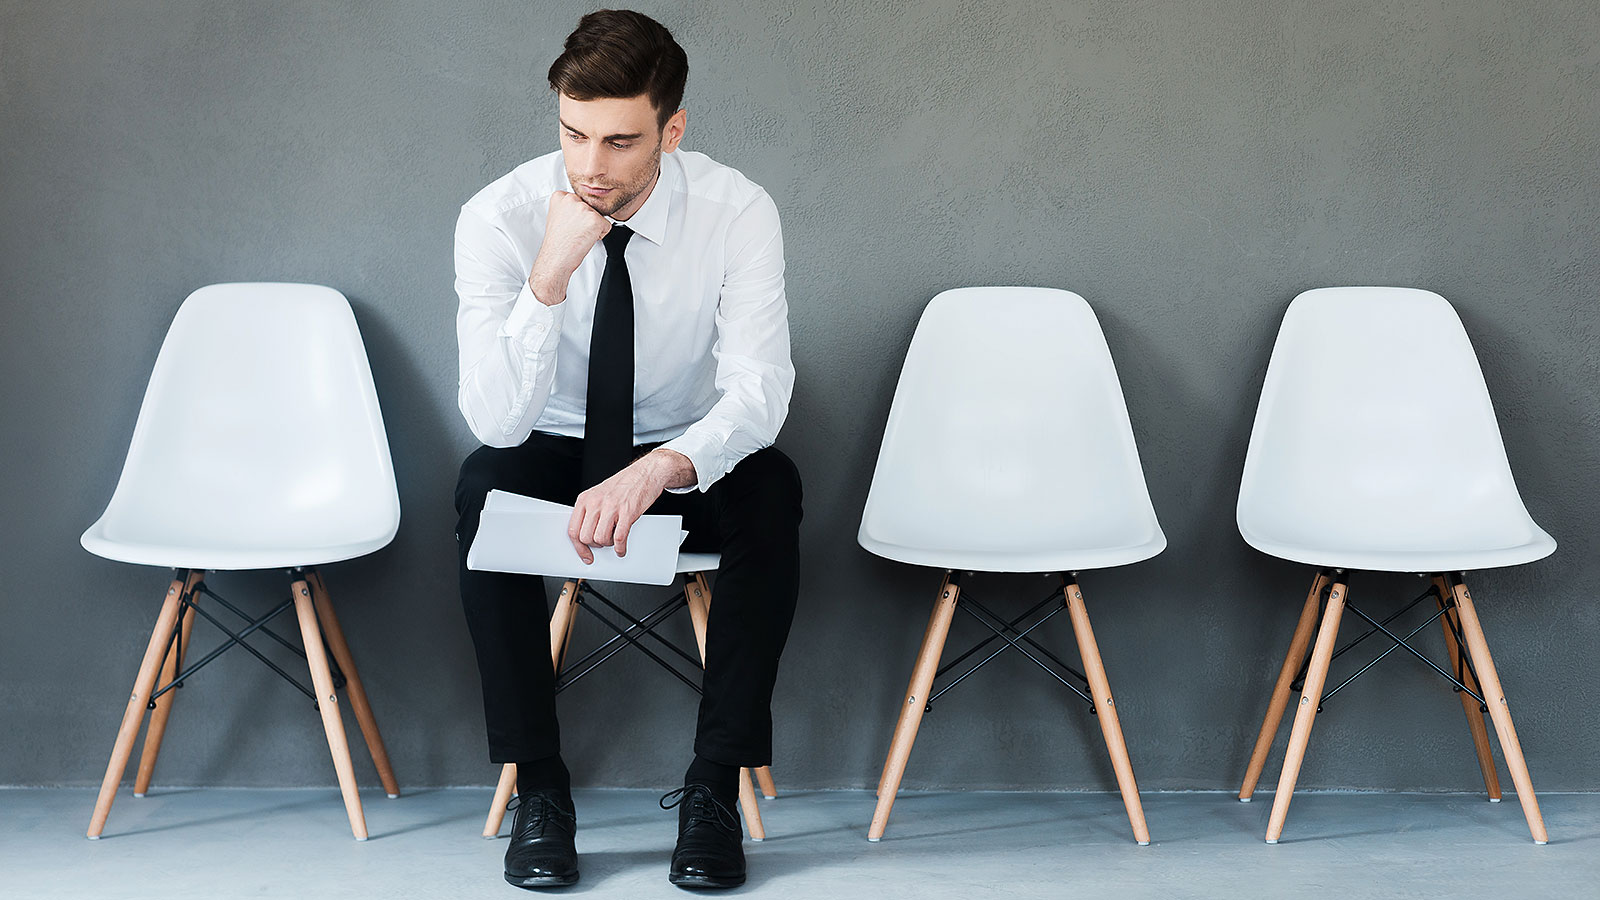 These are the 3 most important things you must do before the interview